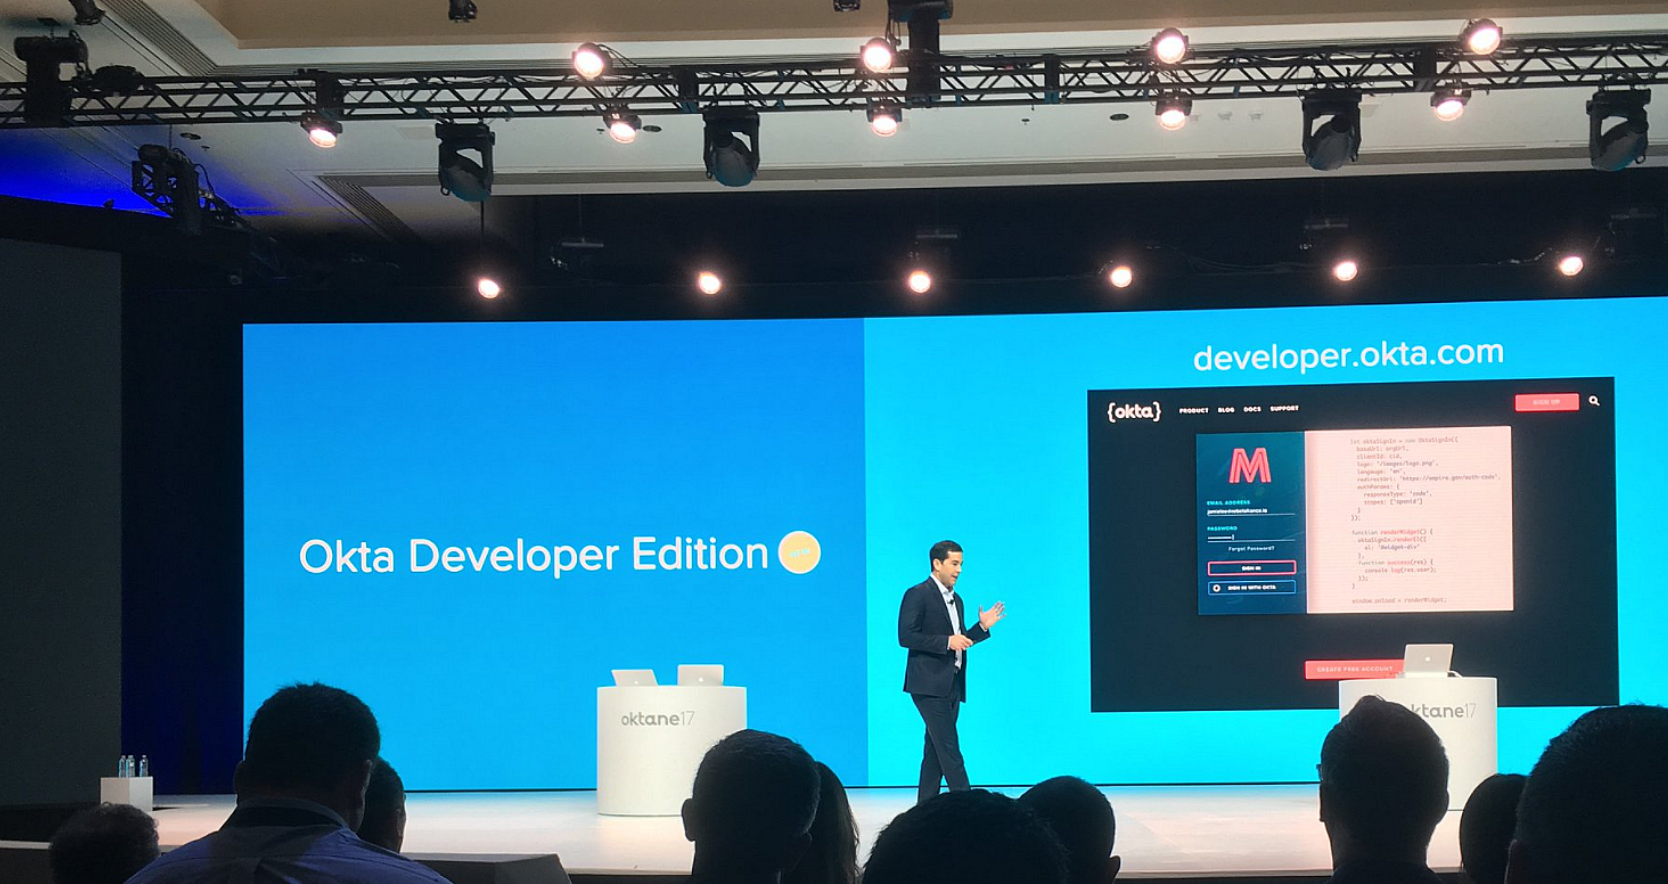 Okta Developer Edition